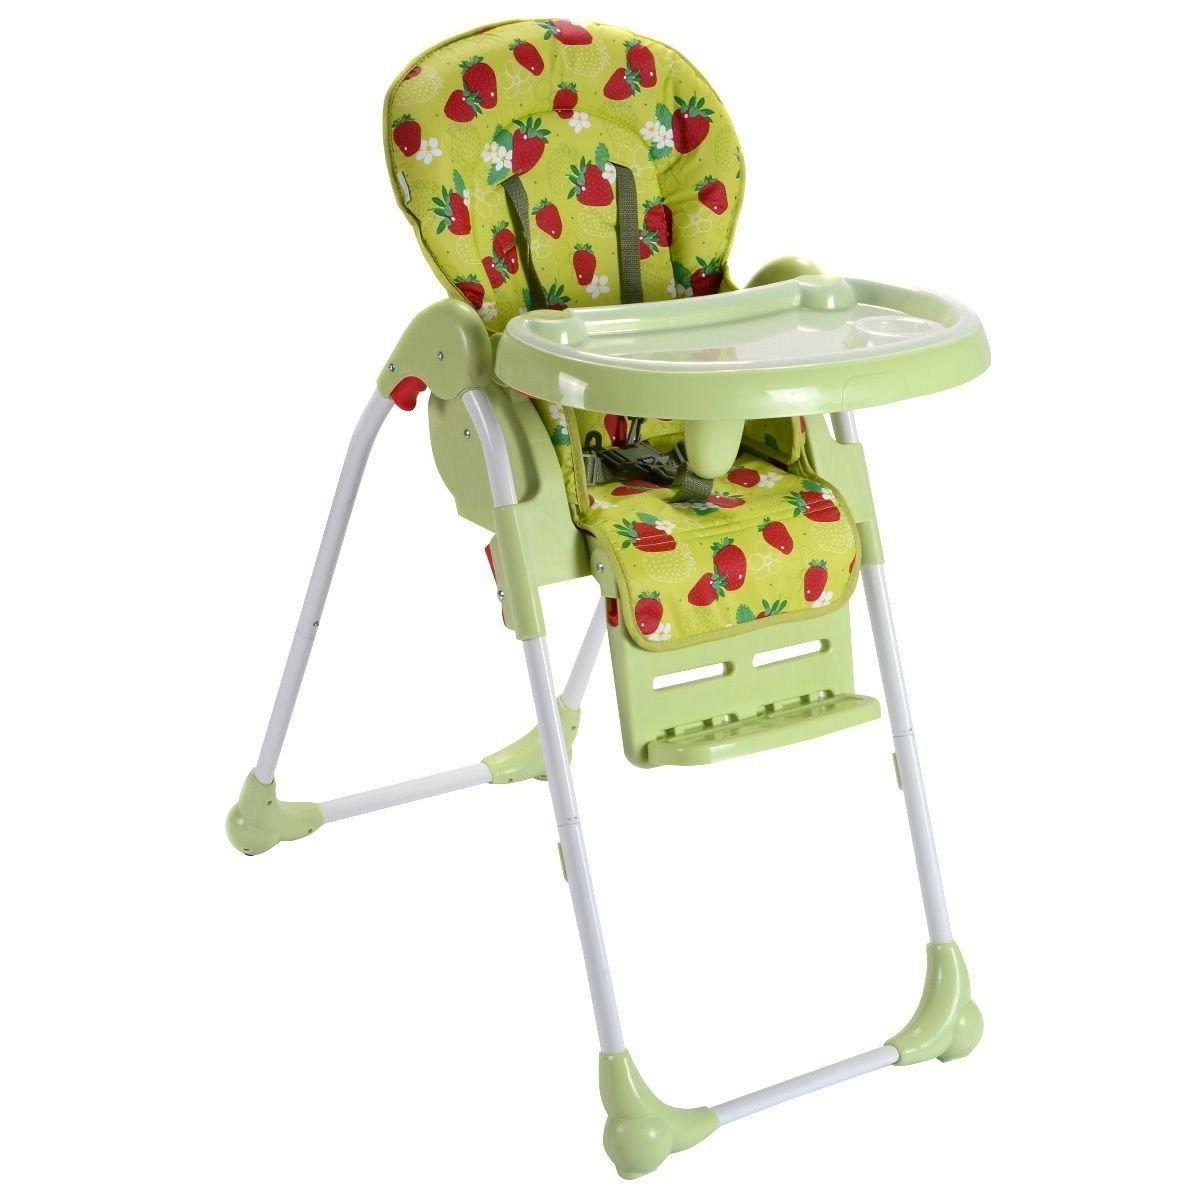 Costzon Adjustable Baby High Chair Infant Toddler Feeding Bo